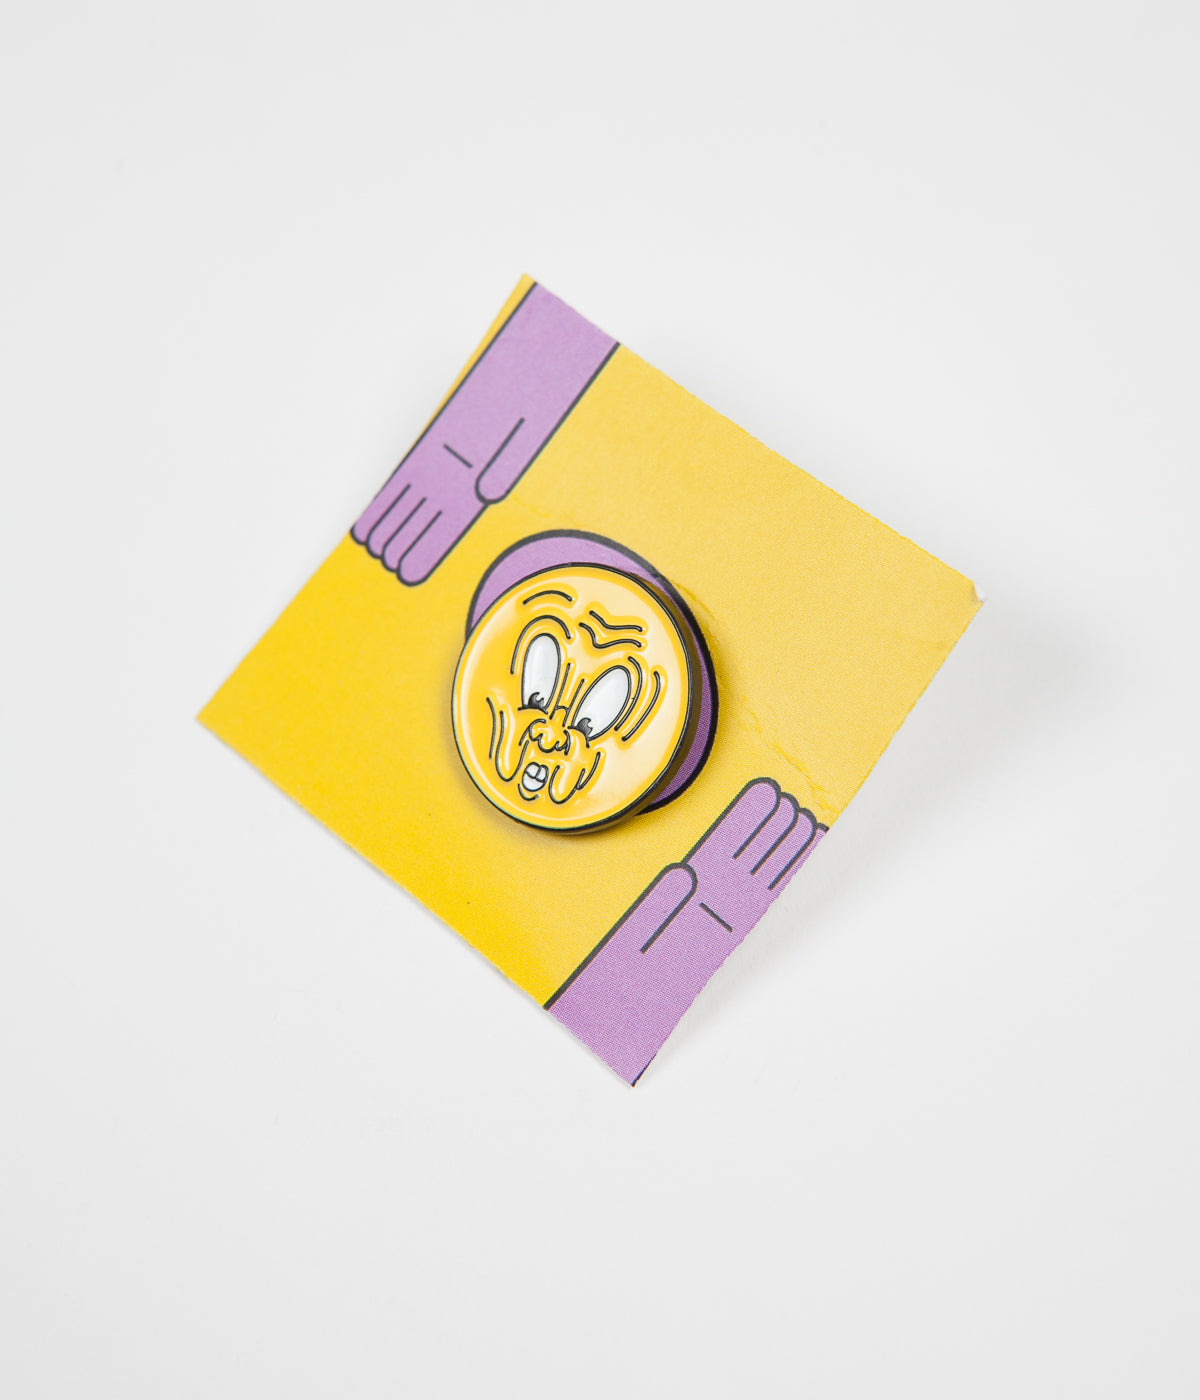 Carpet Co. Lapel Pins - Corny